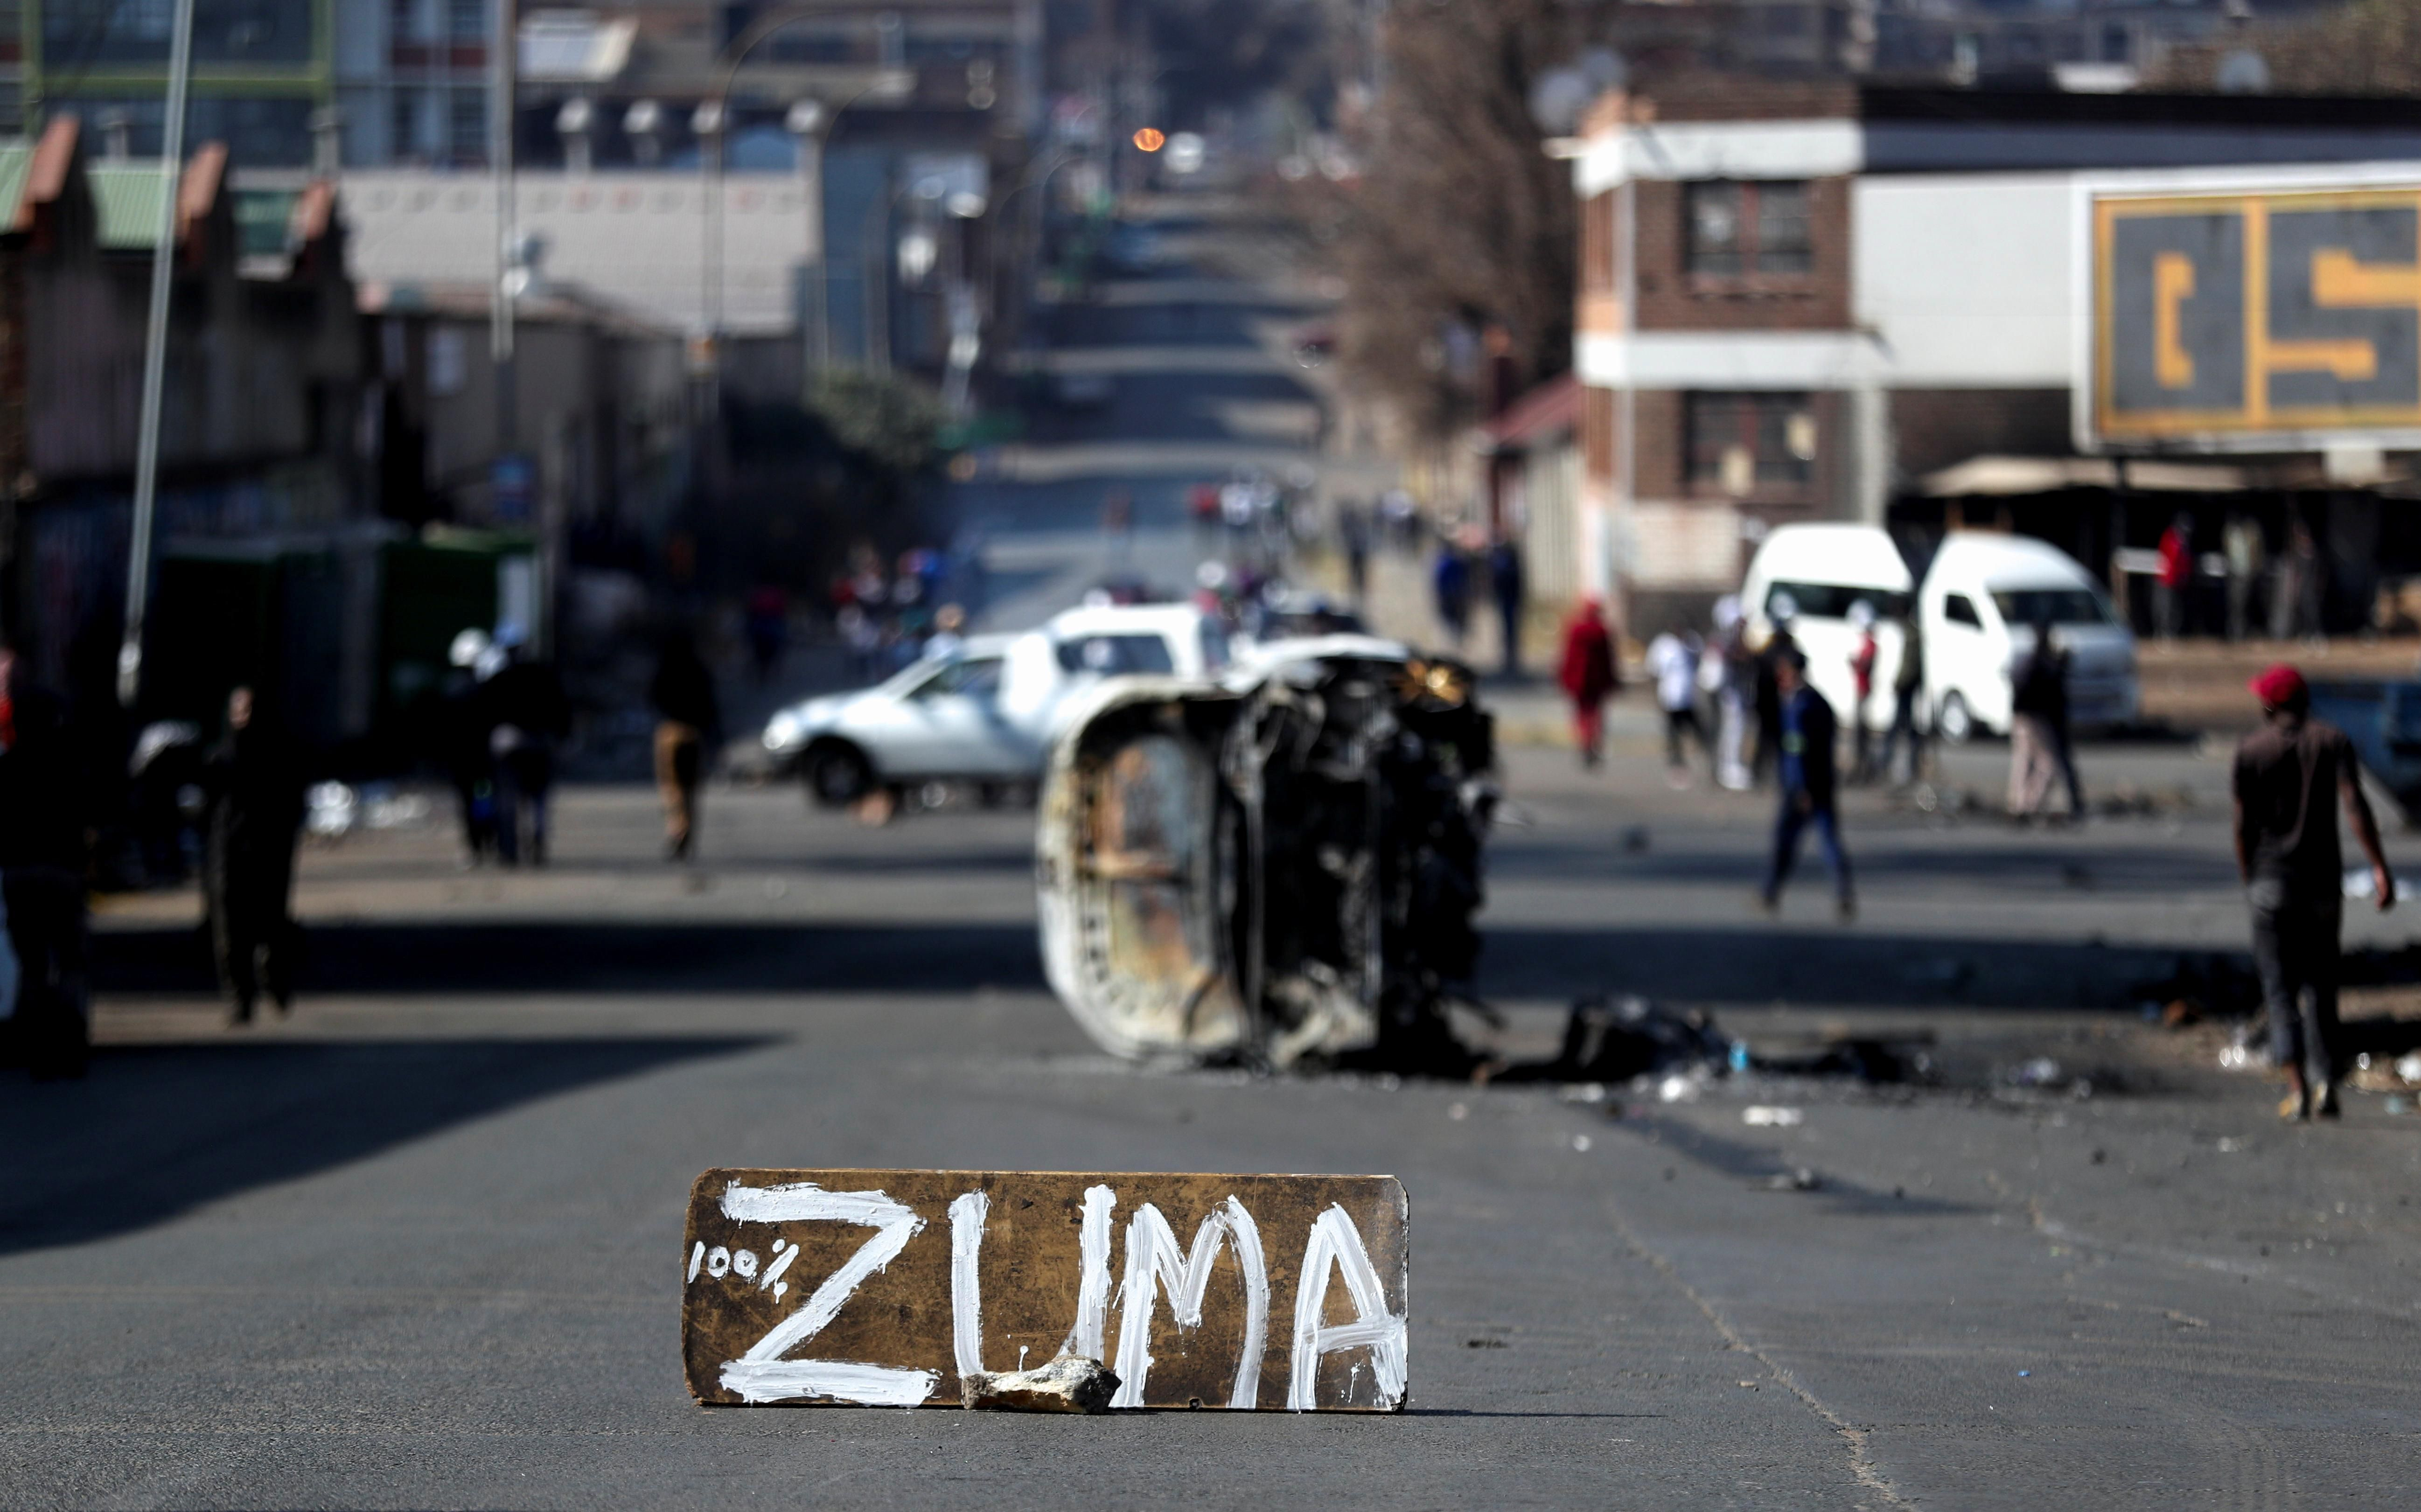 The remains of a burnt car and a sign block the road after stick-wielding protesters marched through the streets, as violence following the jailing of former South African President Jacob Zuma spread to the country's main economic hub in Johannesburg, South Africa, July 11, 2021